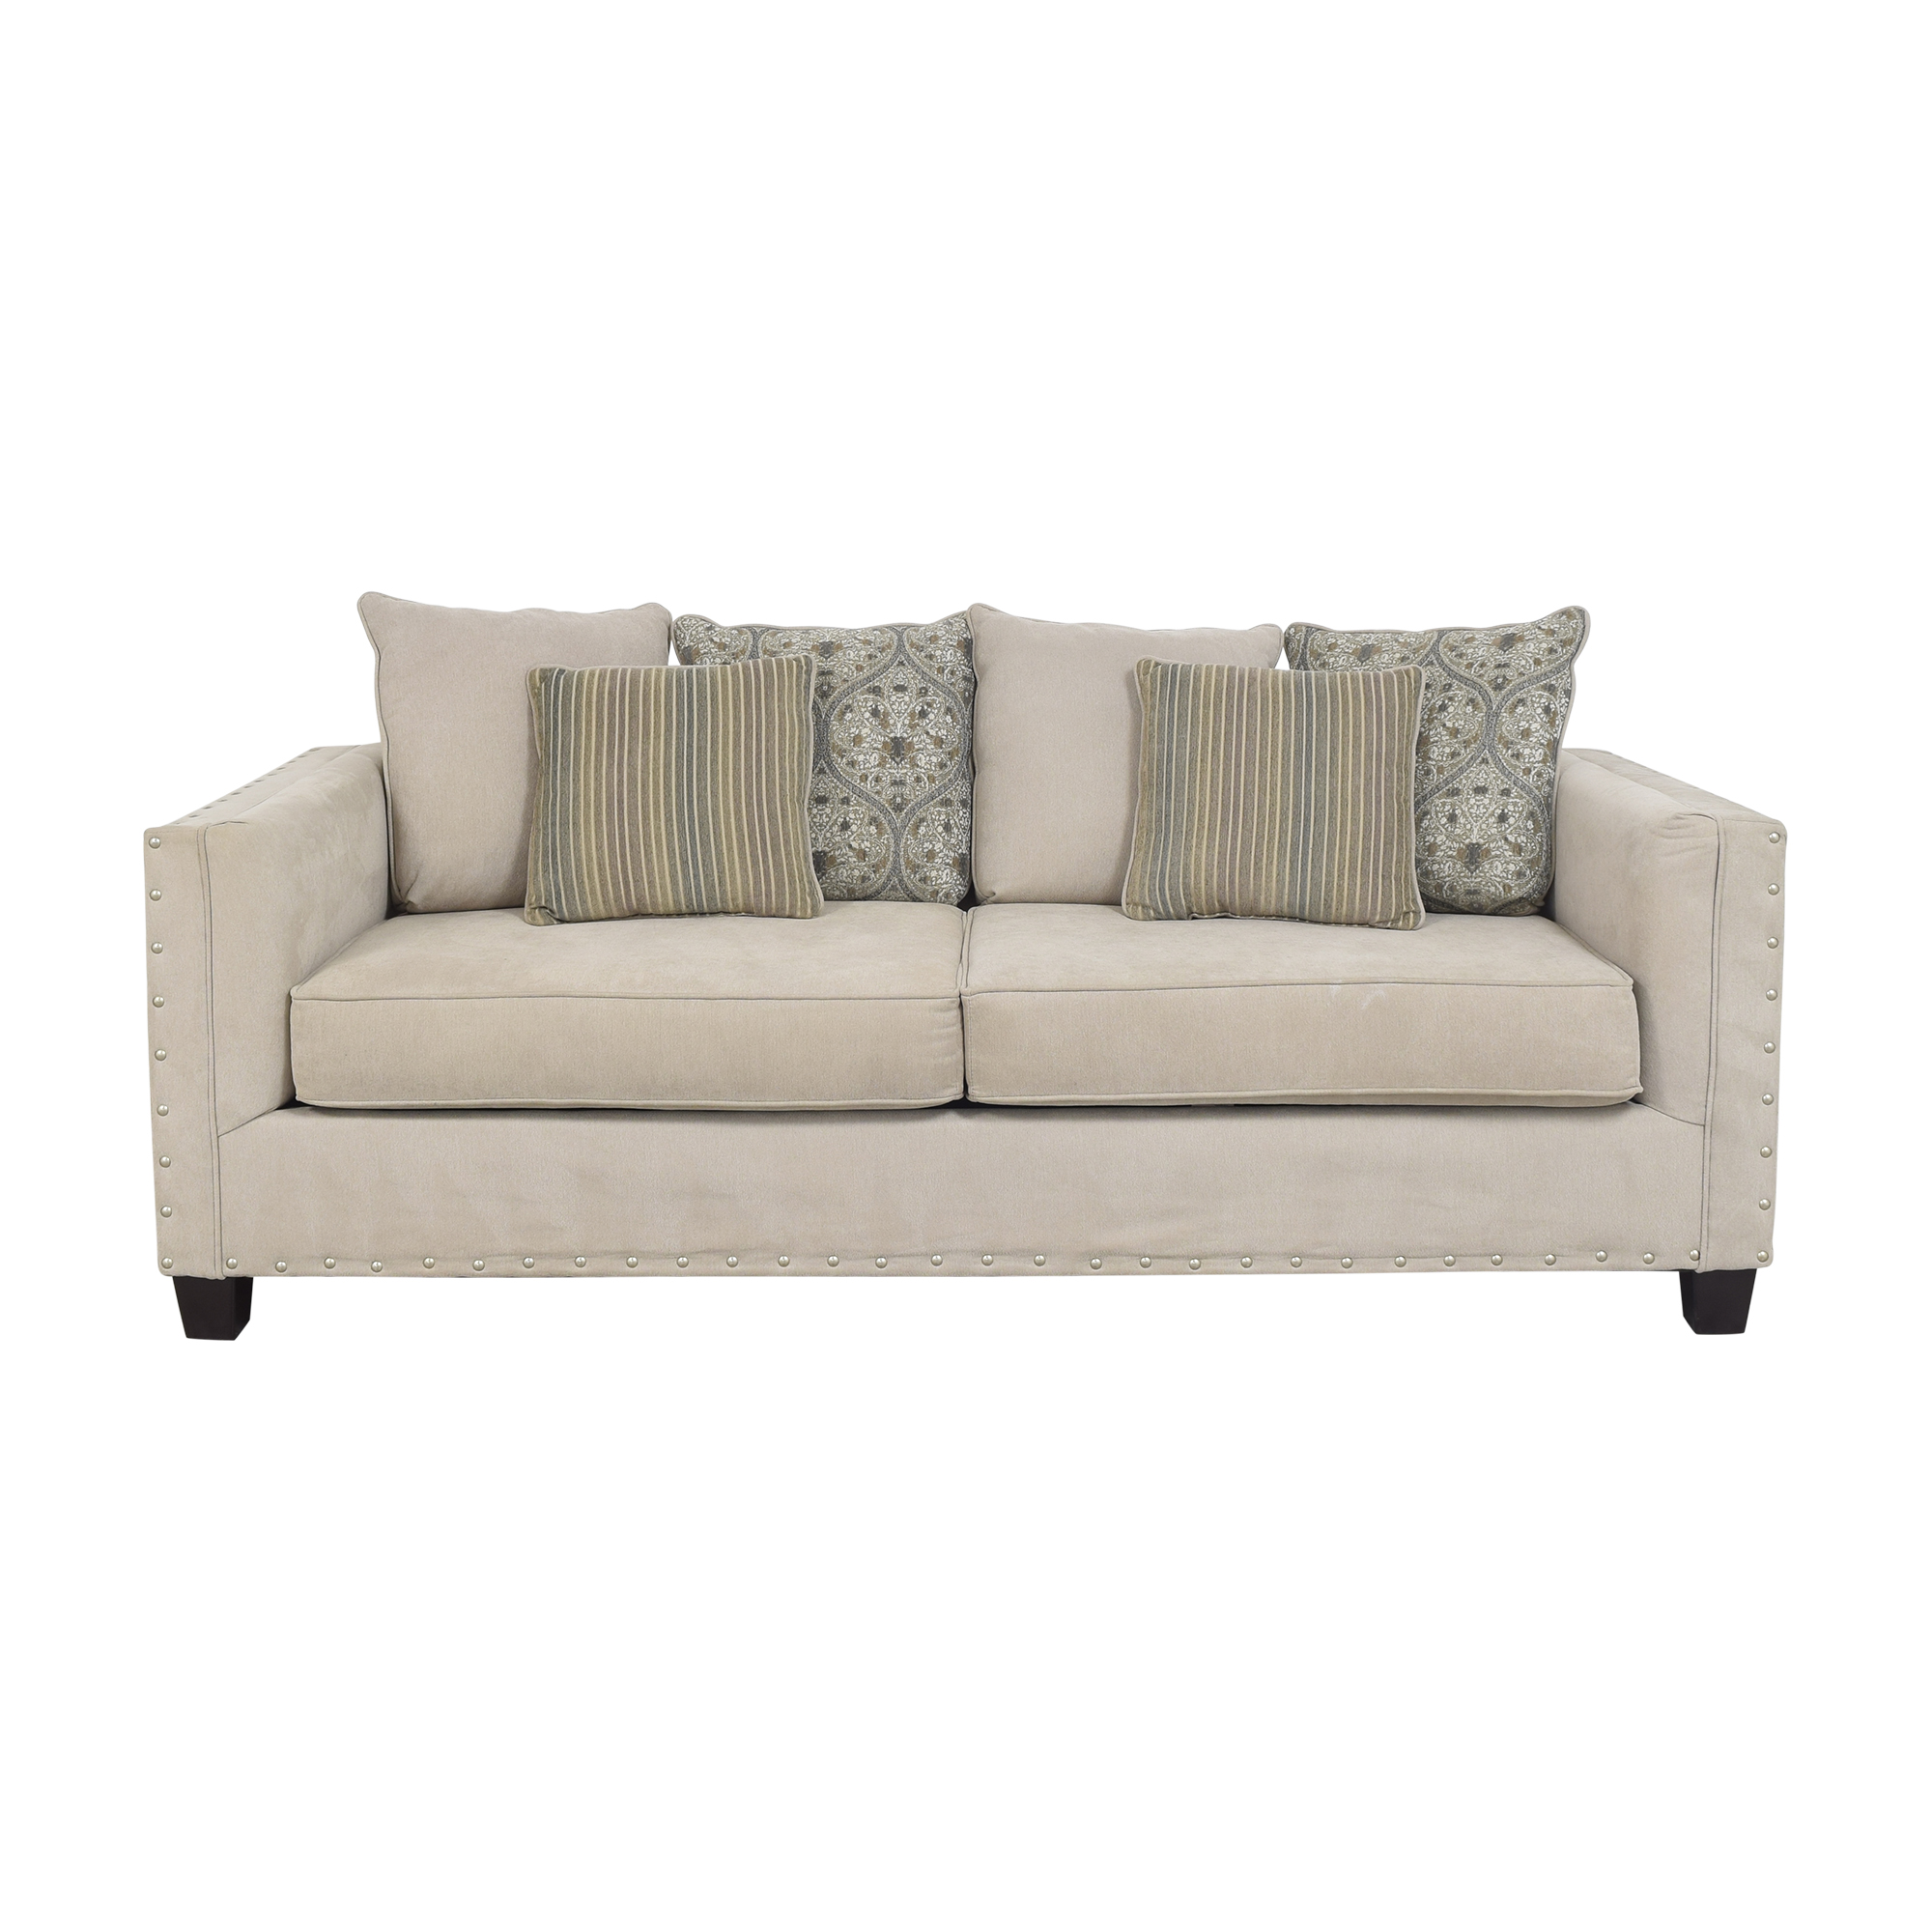 Raymour & Flanigan Two Cushion Sofa Raymour & Flanigan